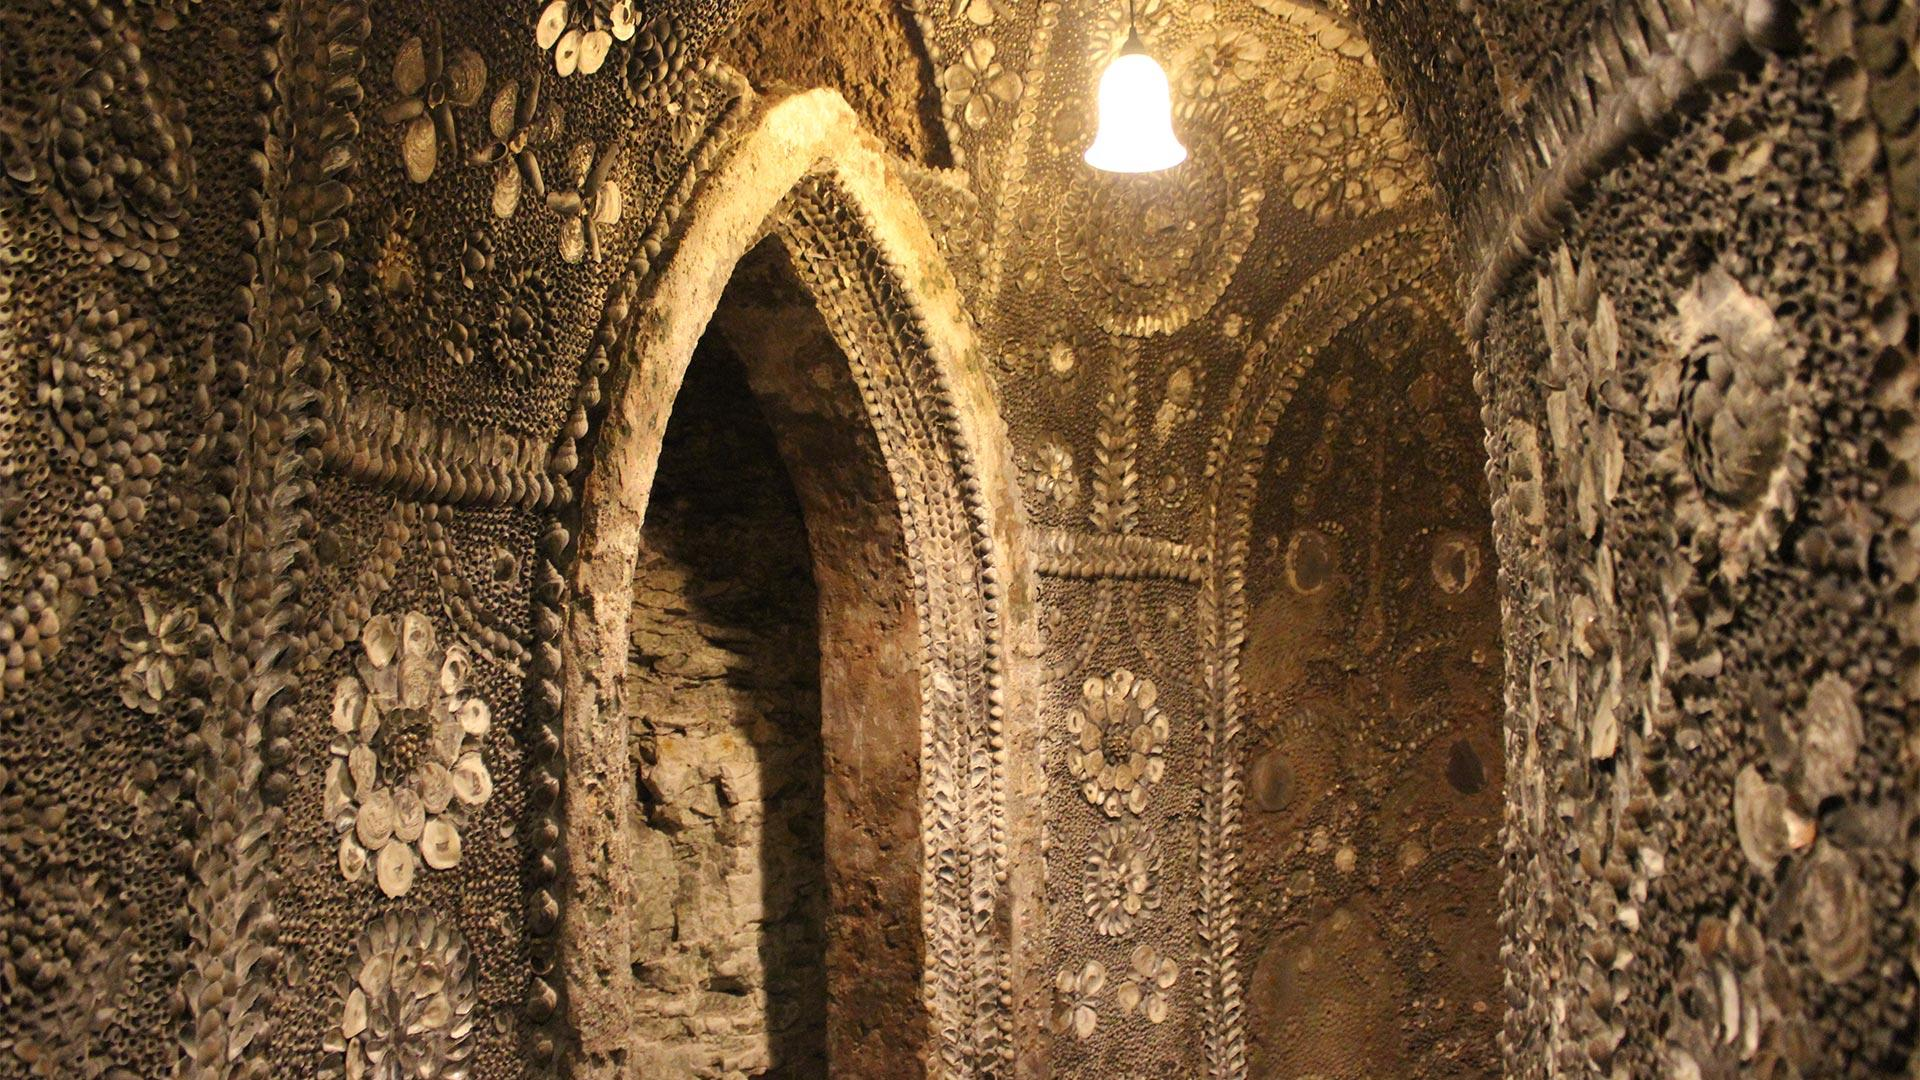 Margate's mysterious Shell Grotto